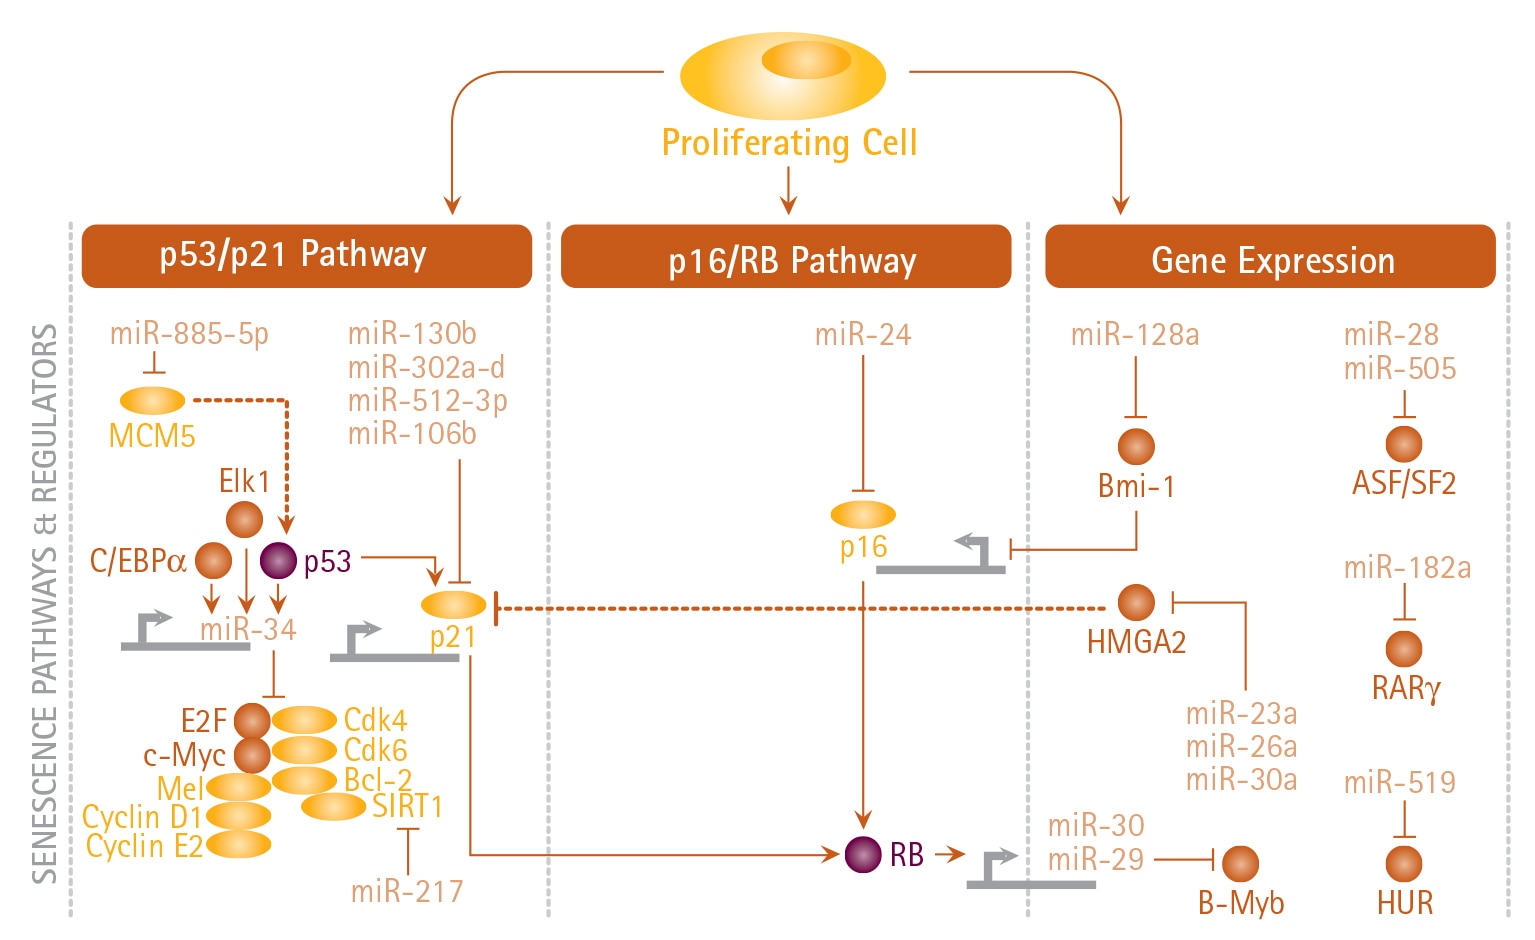 Senescence Pathways and Regulators